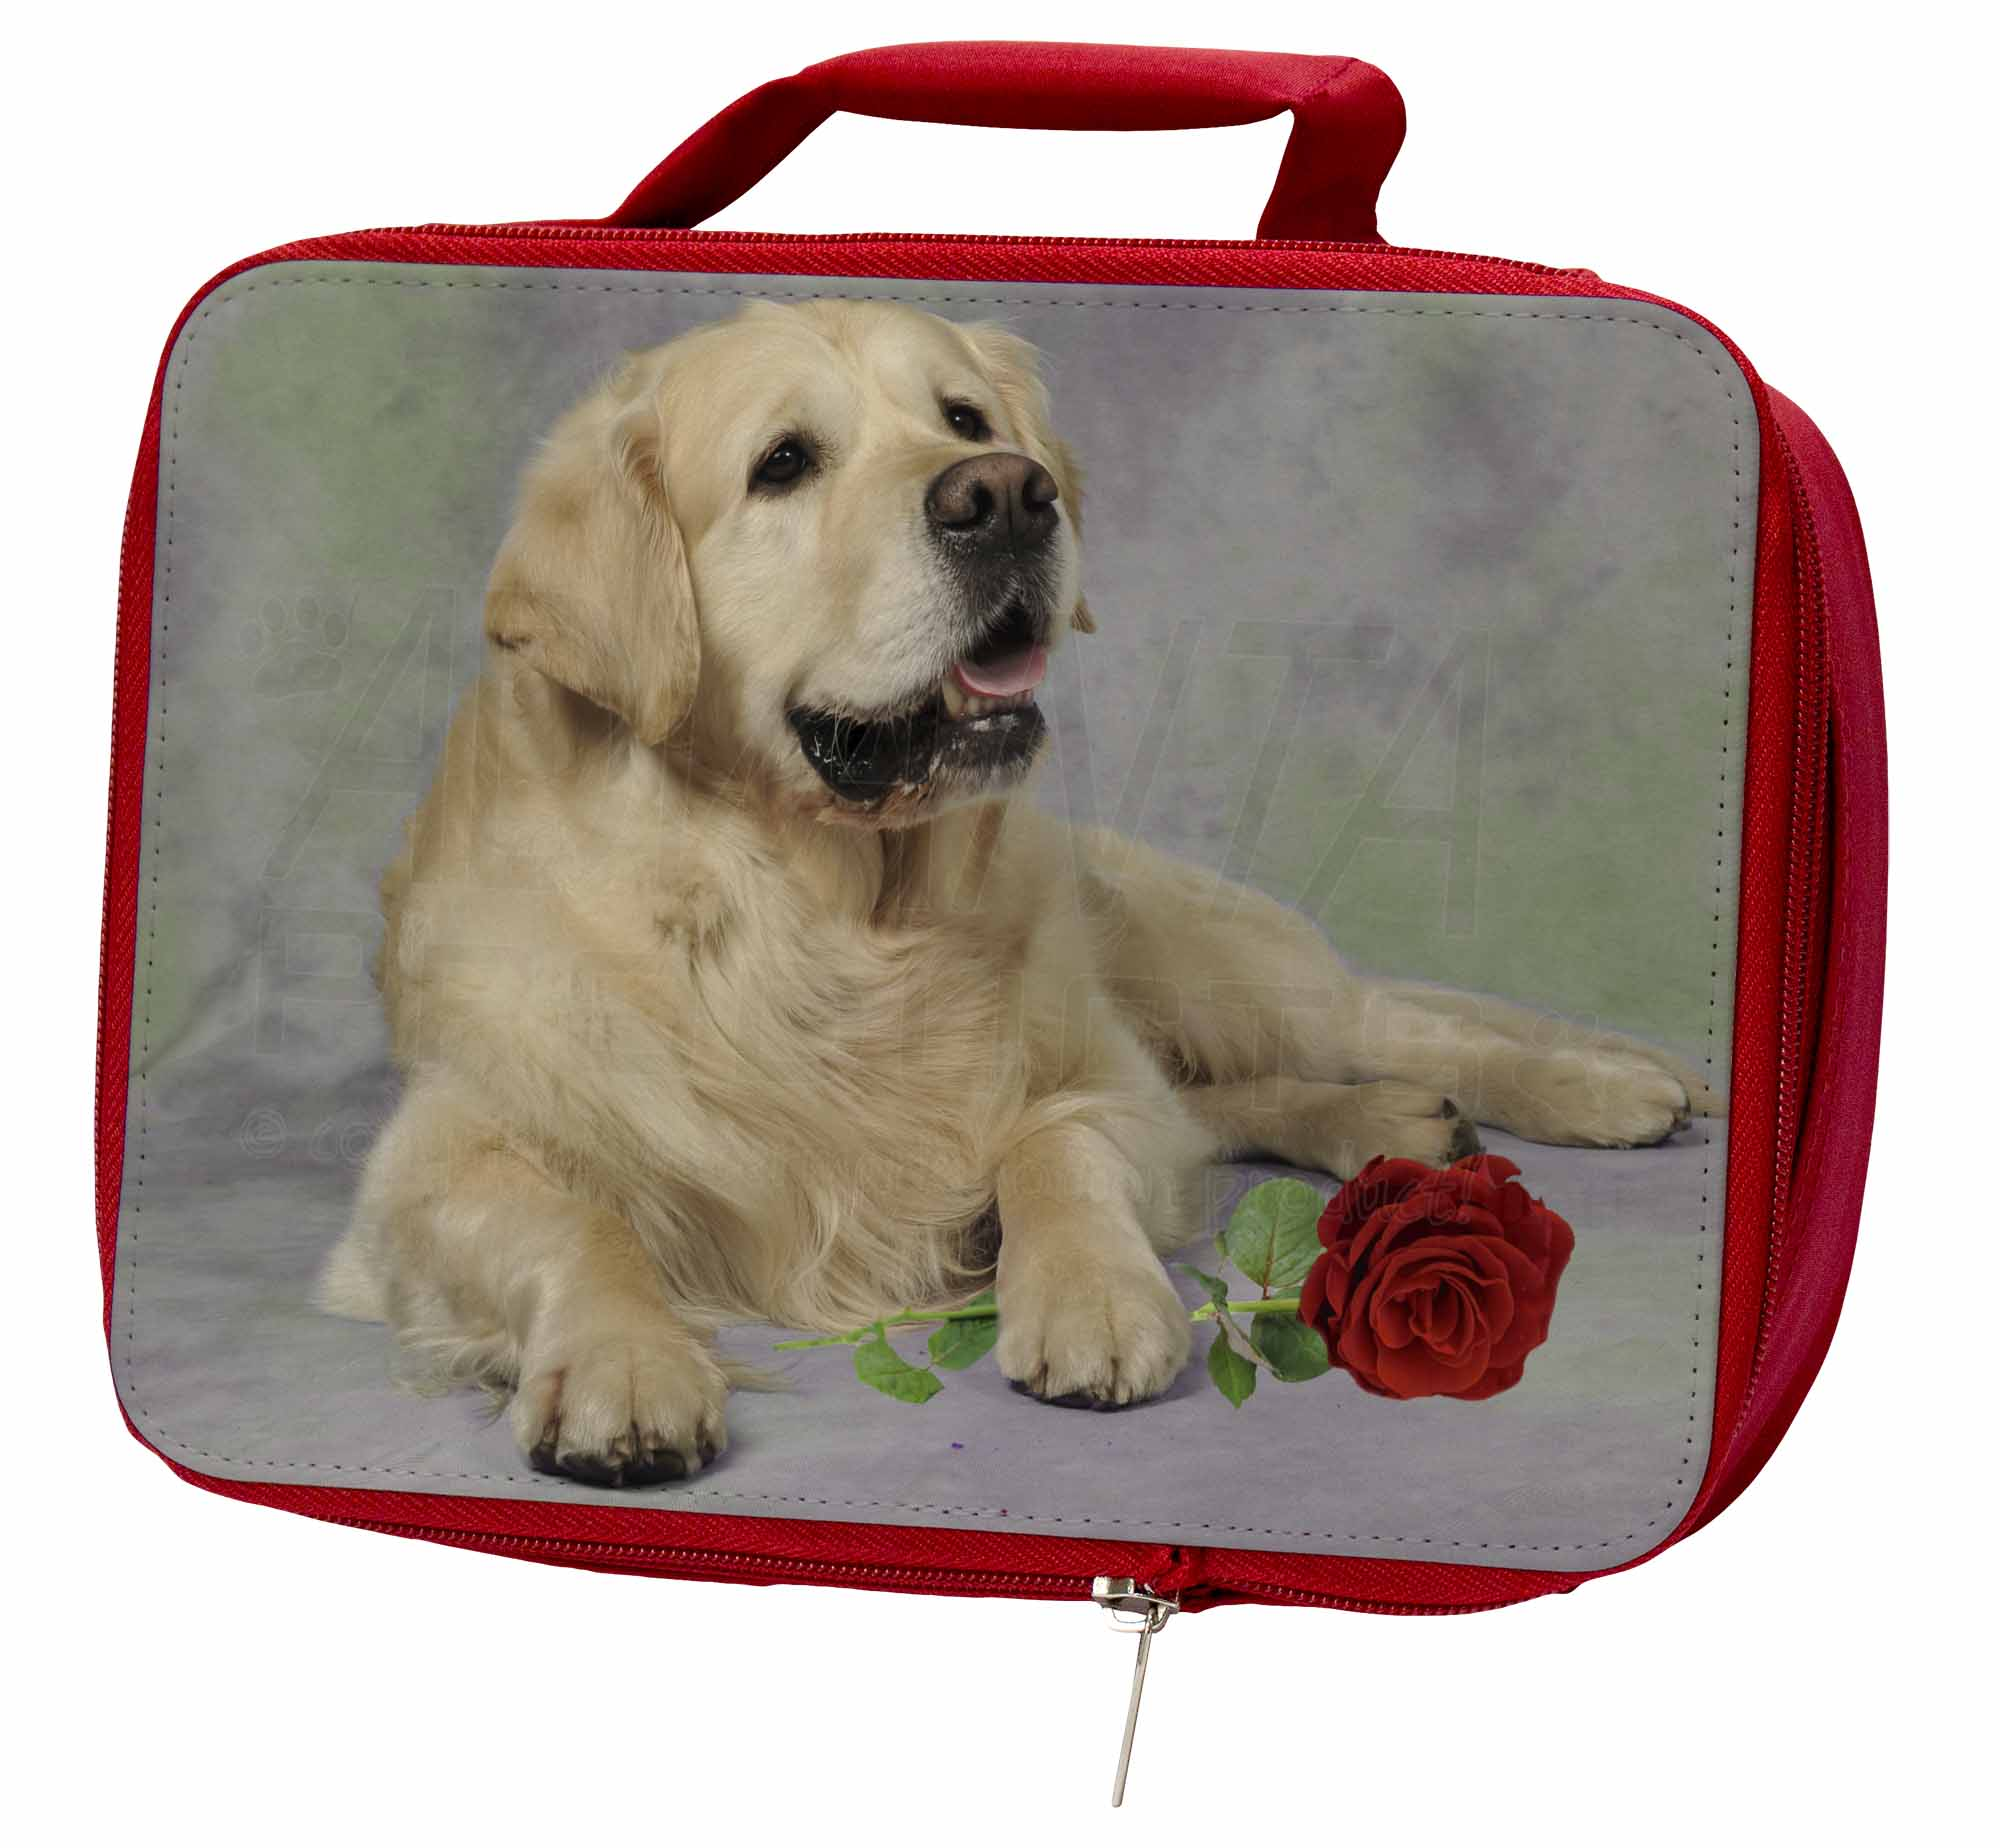 Golden Retriever with Red Rose Insulated Red School AD-GR2RLBR Lunch Box/Picnic, AD-GR2RLBR School 4df366